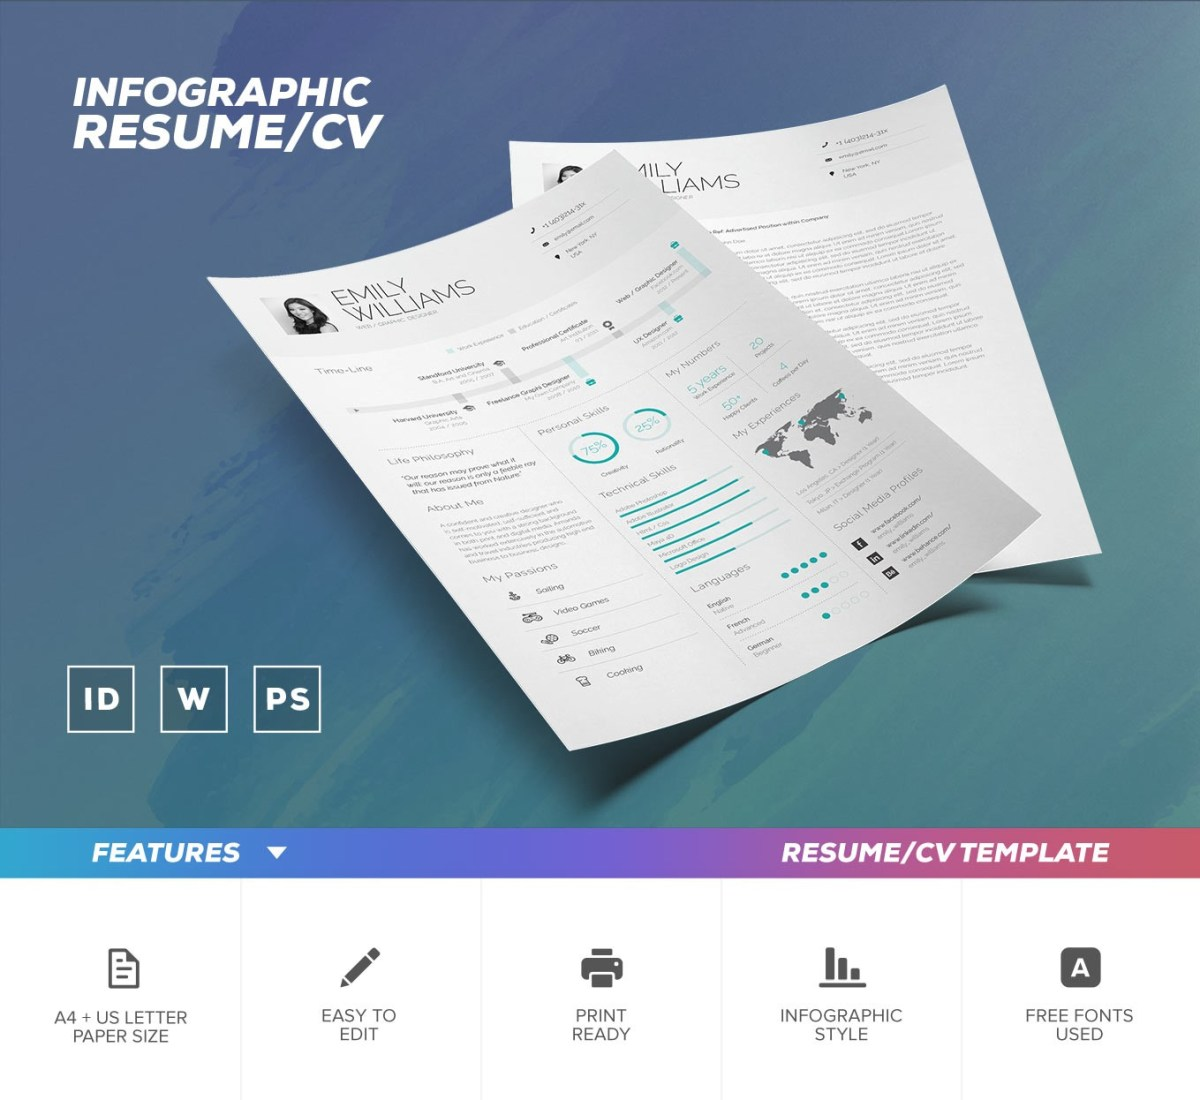 21. Infographic Resume Template